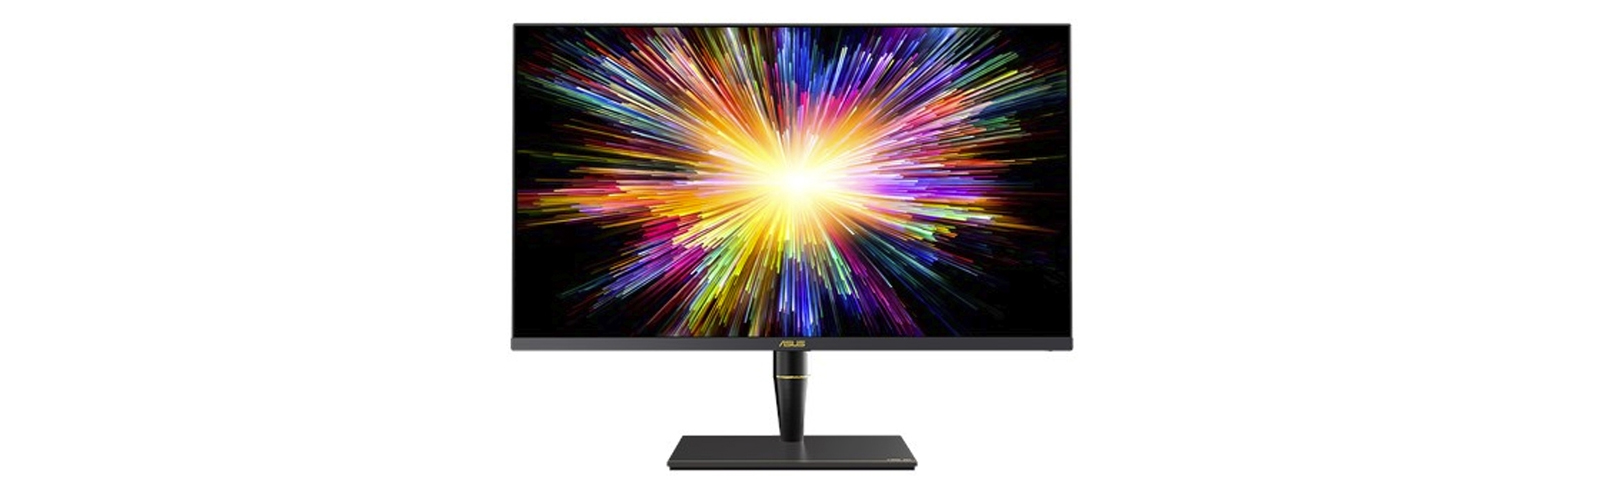 Asus unveils two 4K HDR ProArt monitors for professionals